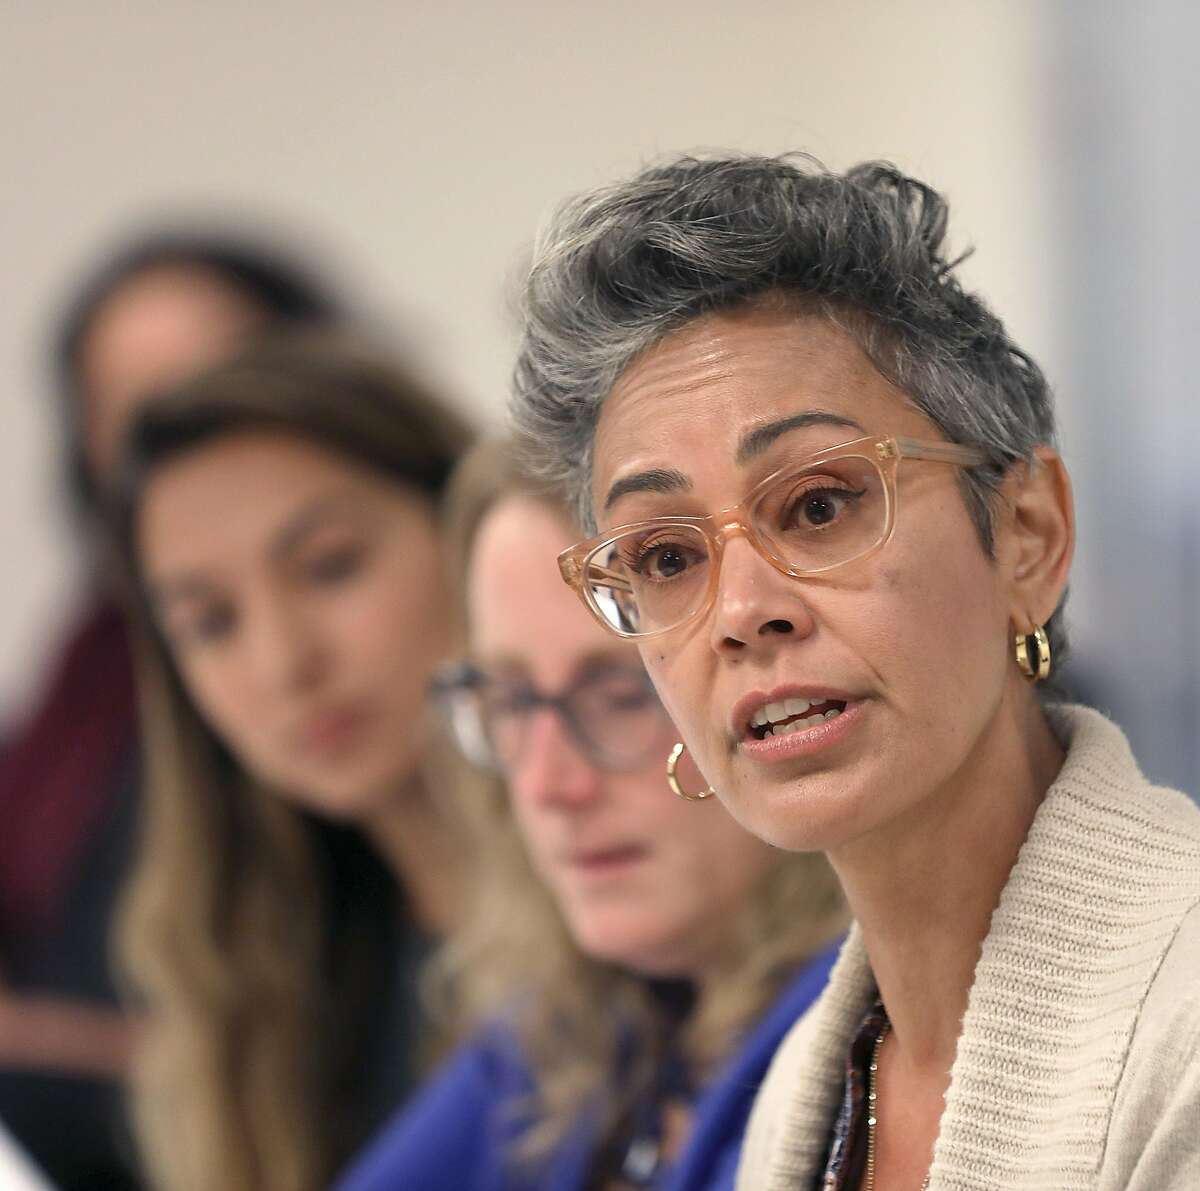 Candidate Alison Collins (right) running for the Board of Education speaks to the San Francisco Chronicle during an editorial board meeting on Wednesday, Sept. 26, 2018, in San Francisco, Calif.